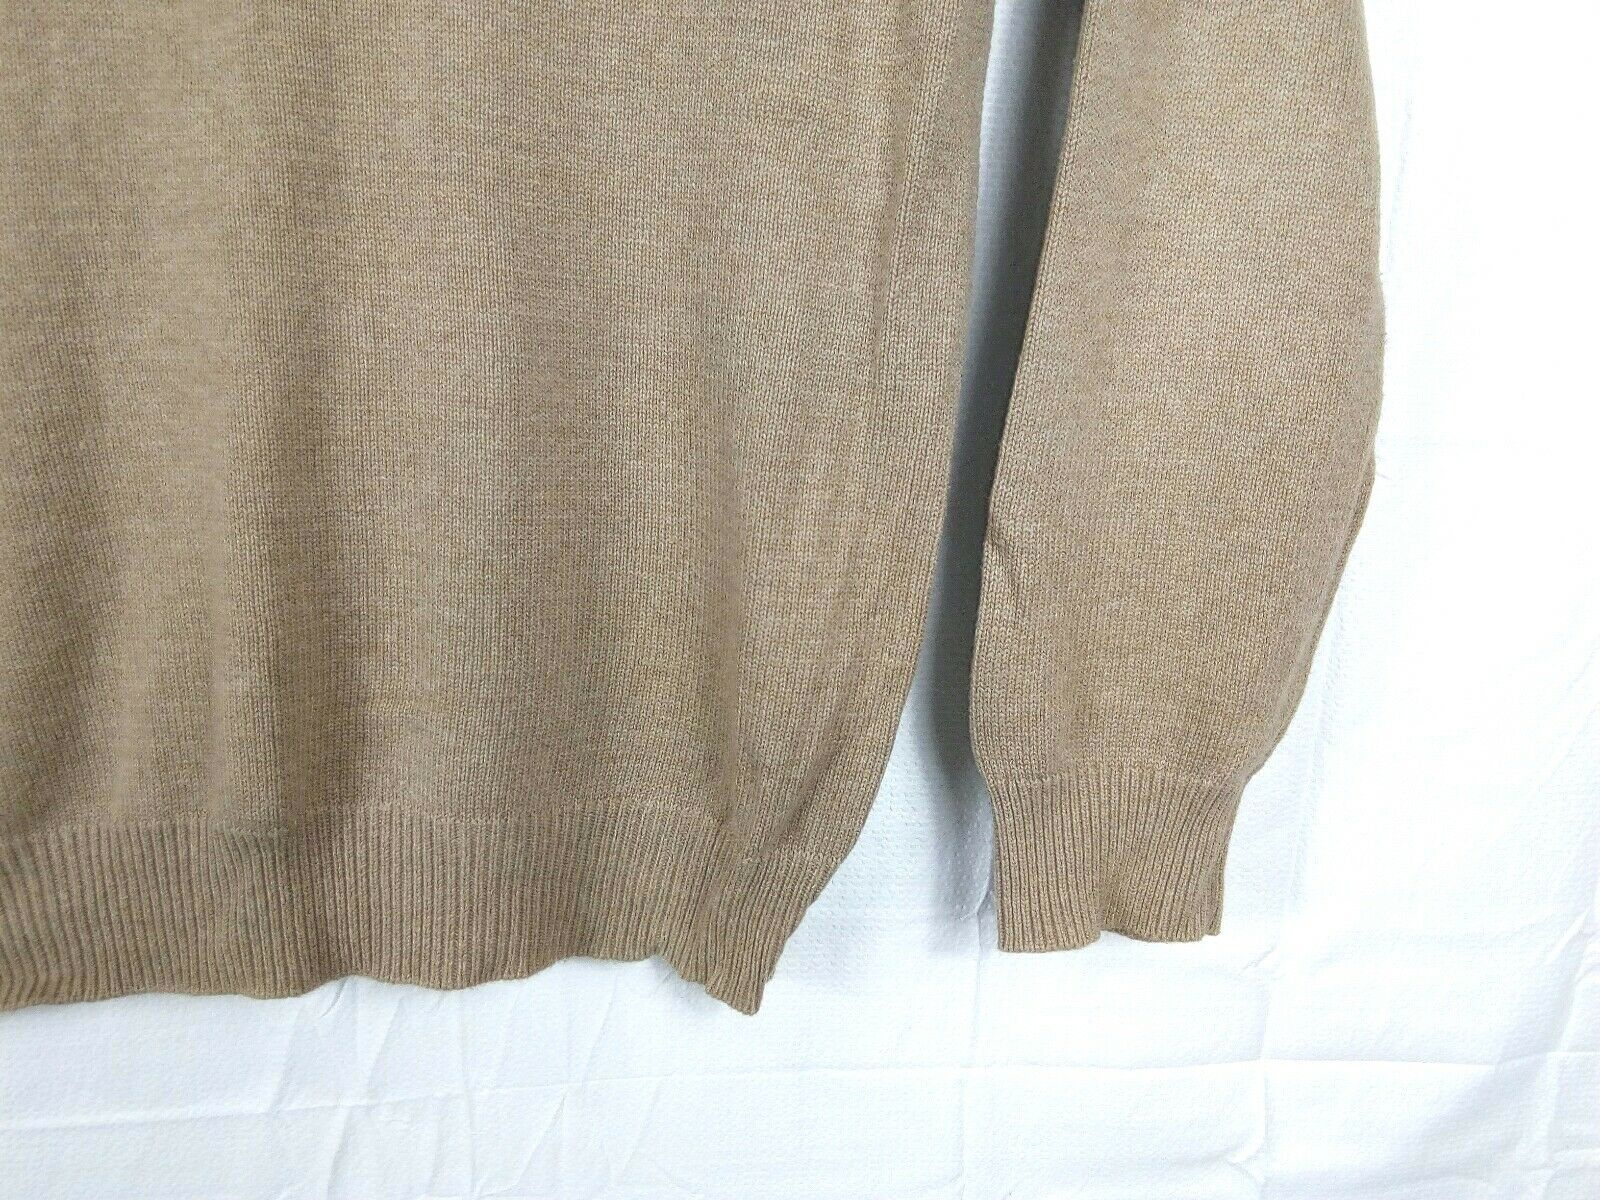 J. CREW Men's XLT Tall 1/4 Zip Tan Cotton/Cashmere Sweater Pullover Cardigan